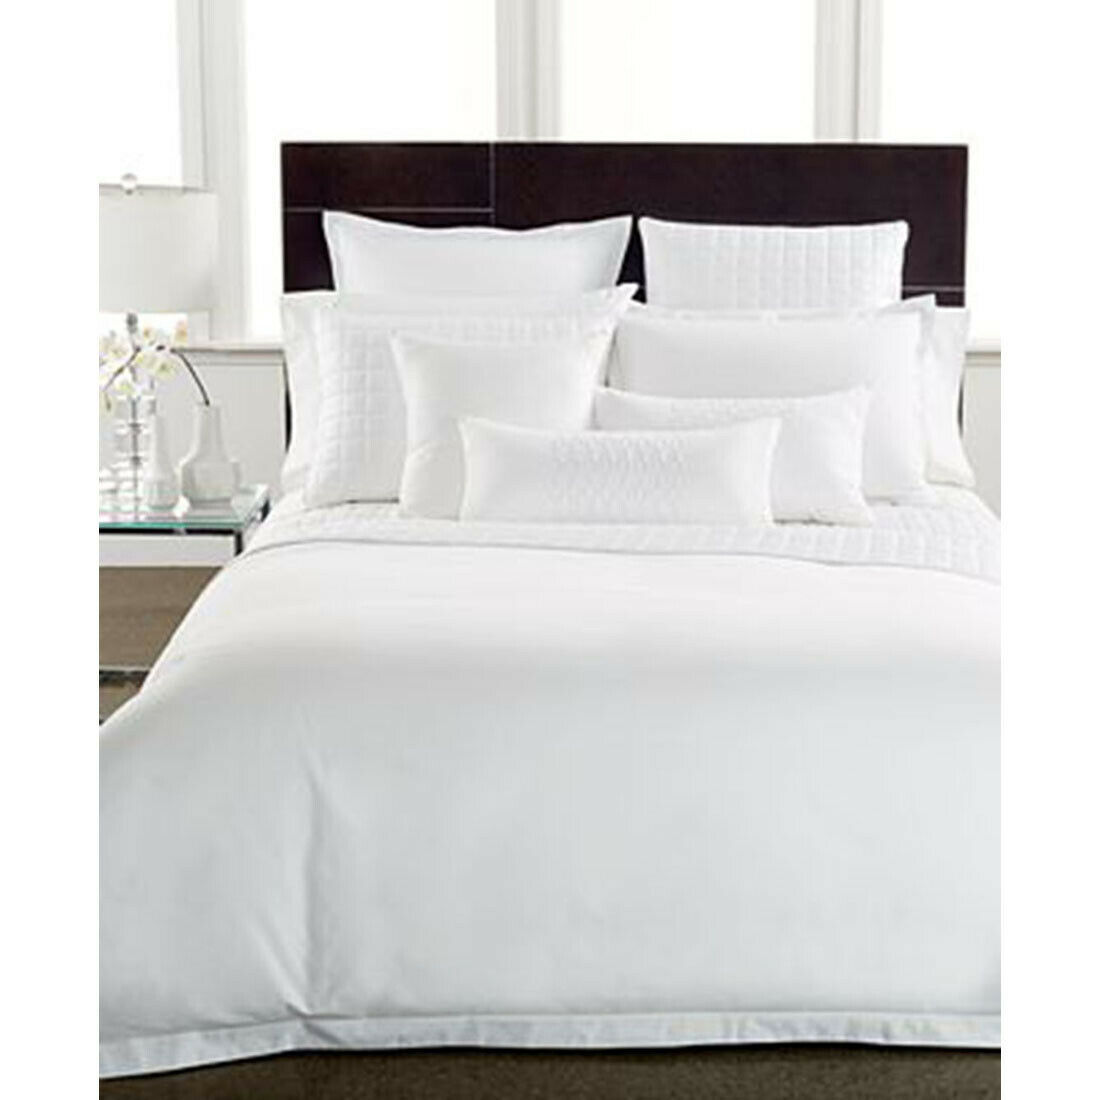 Hotel Collection 600 Thread Count Cotton King Sham, White